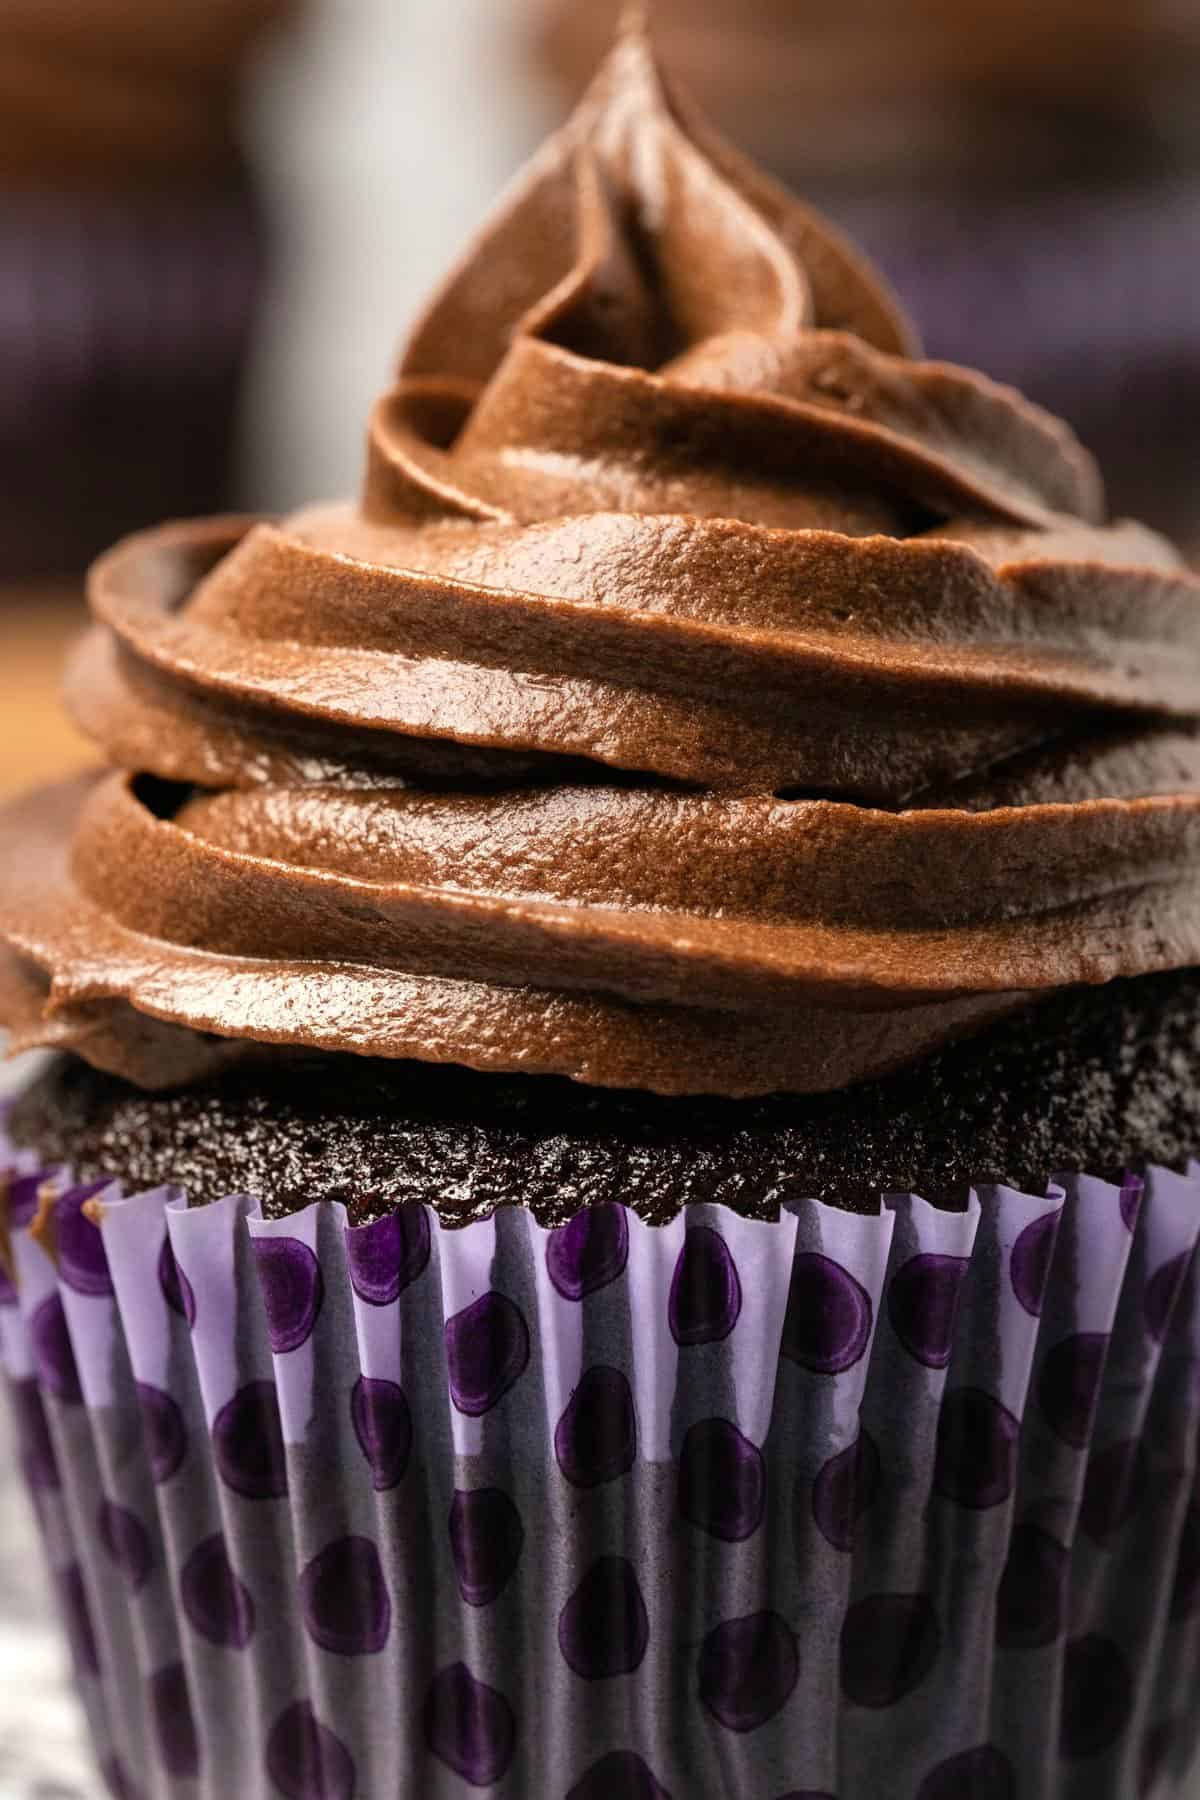 Cupcake with chocolate frosting piped on top.